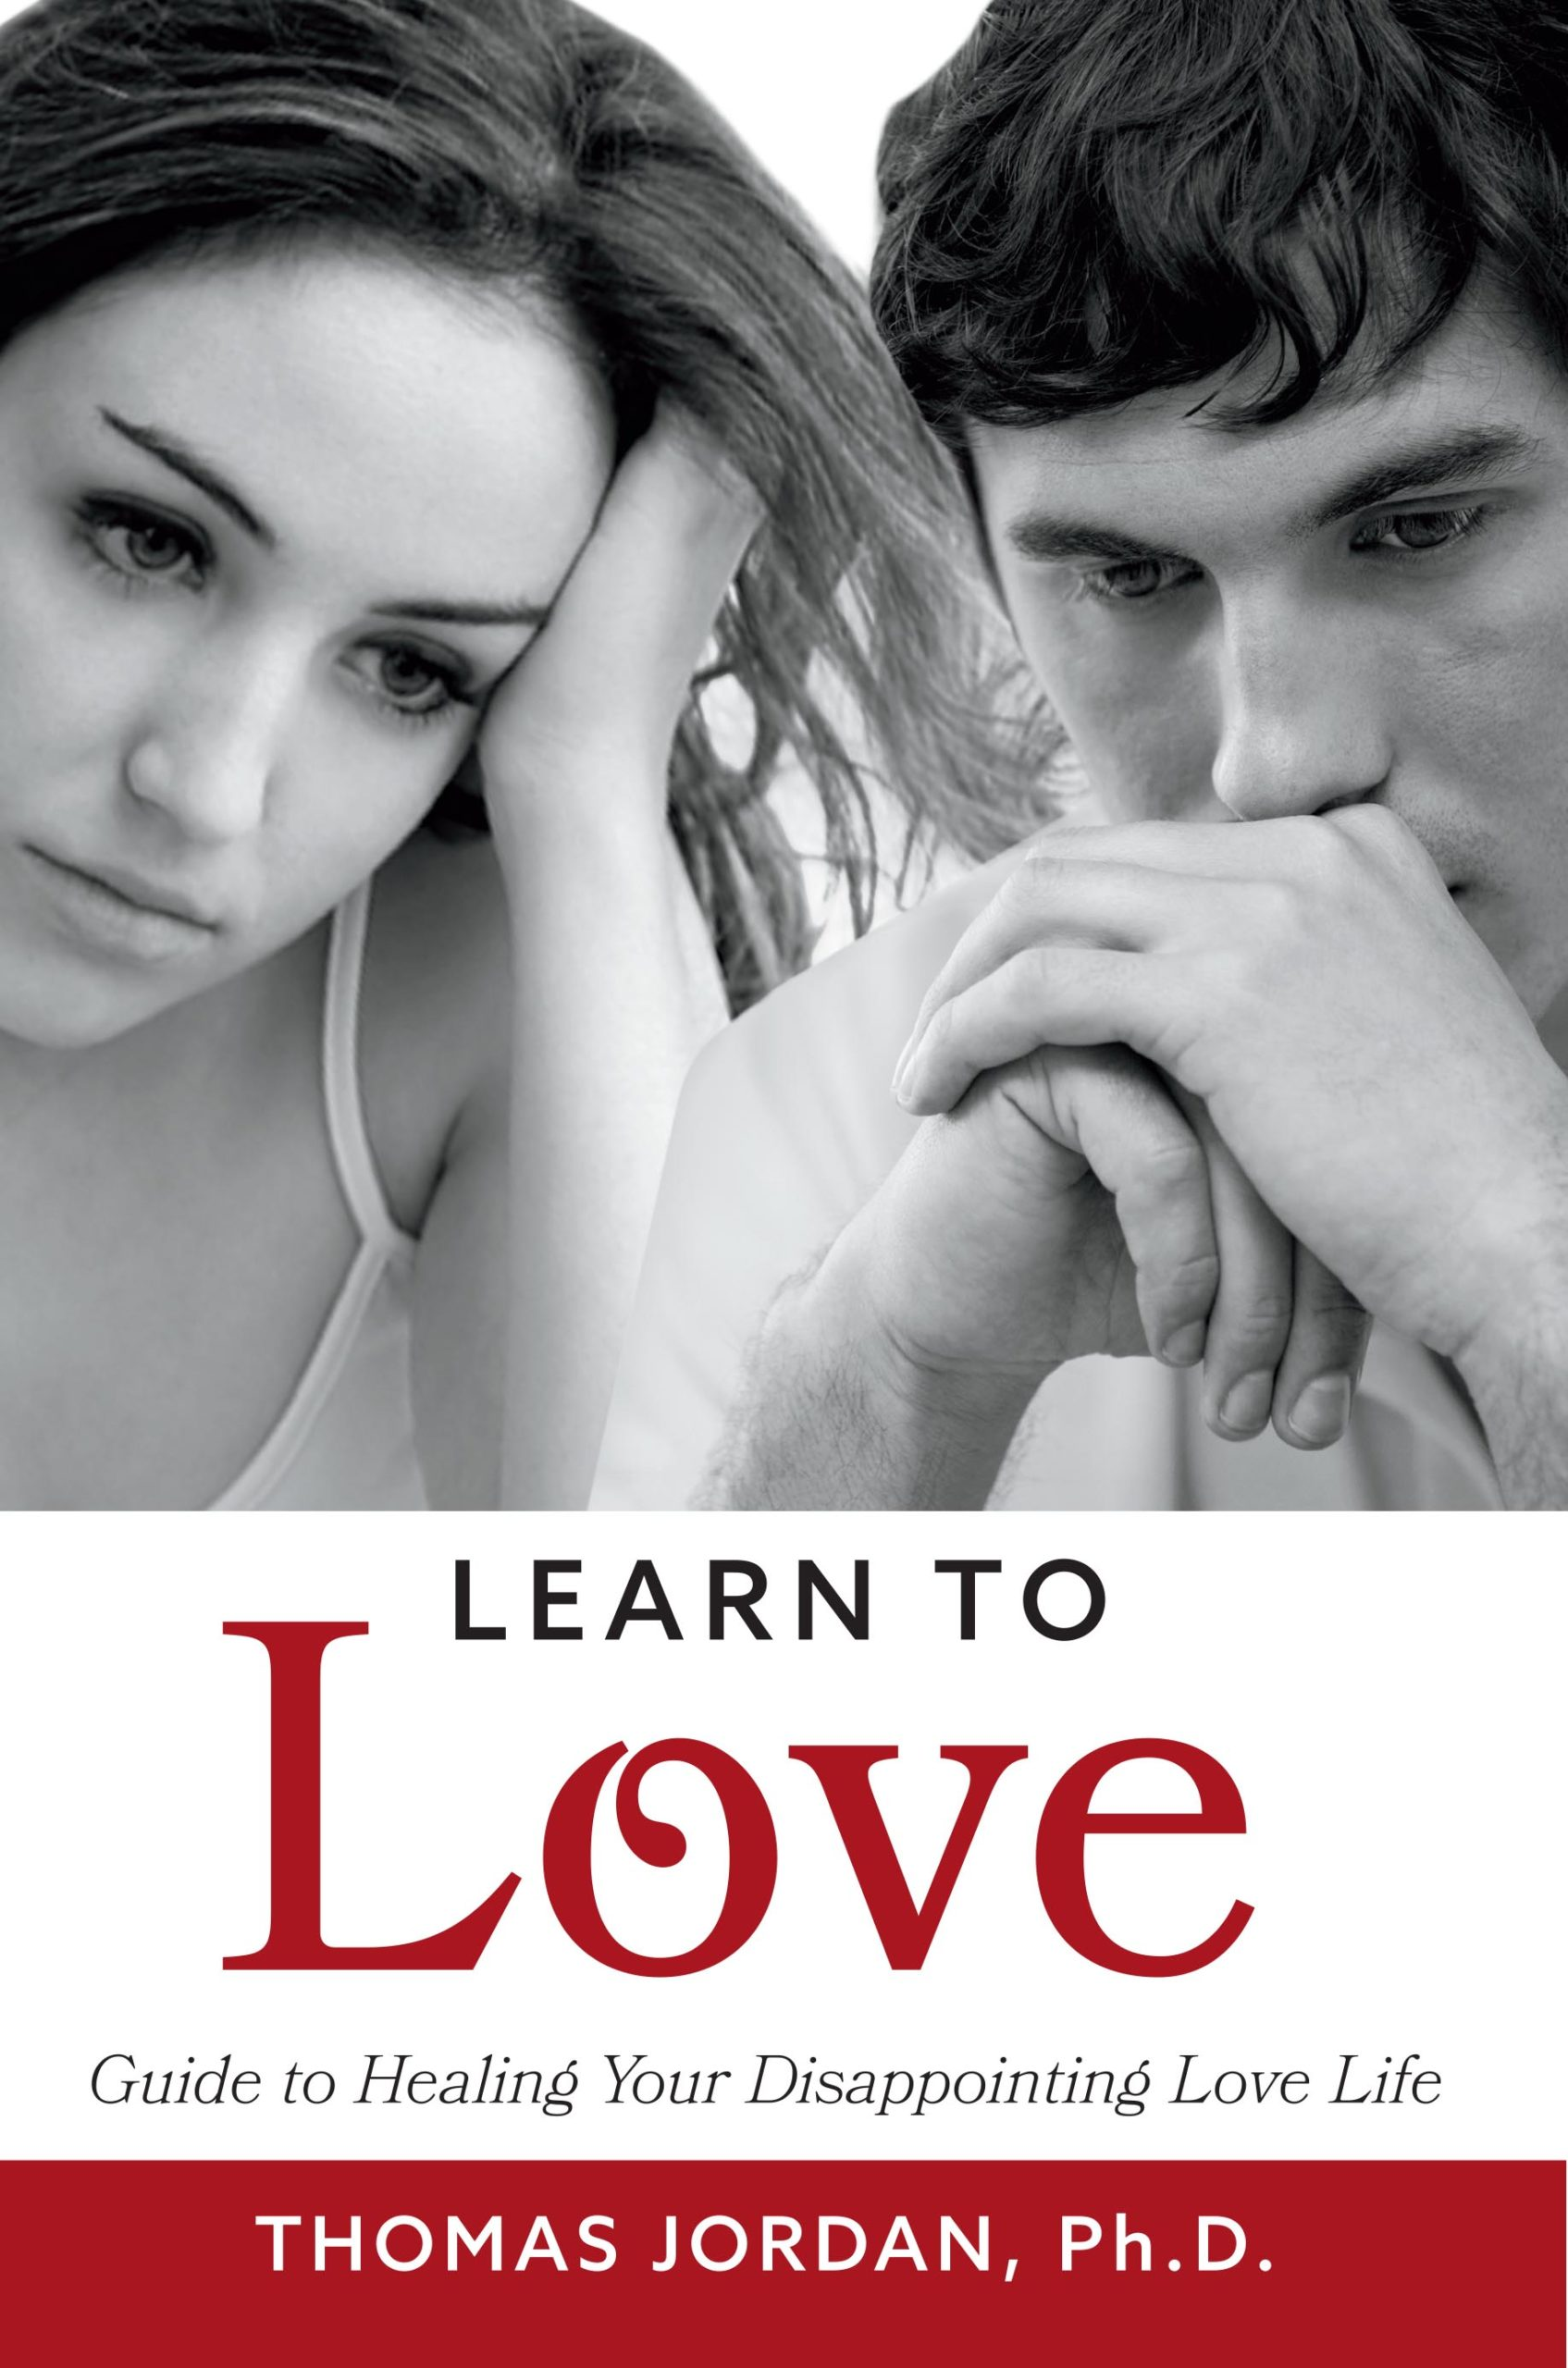 learn to love book cover